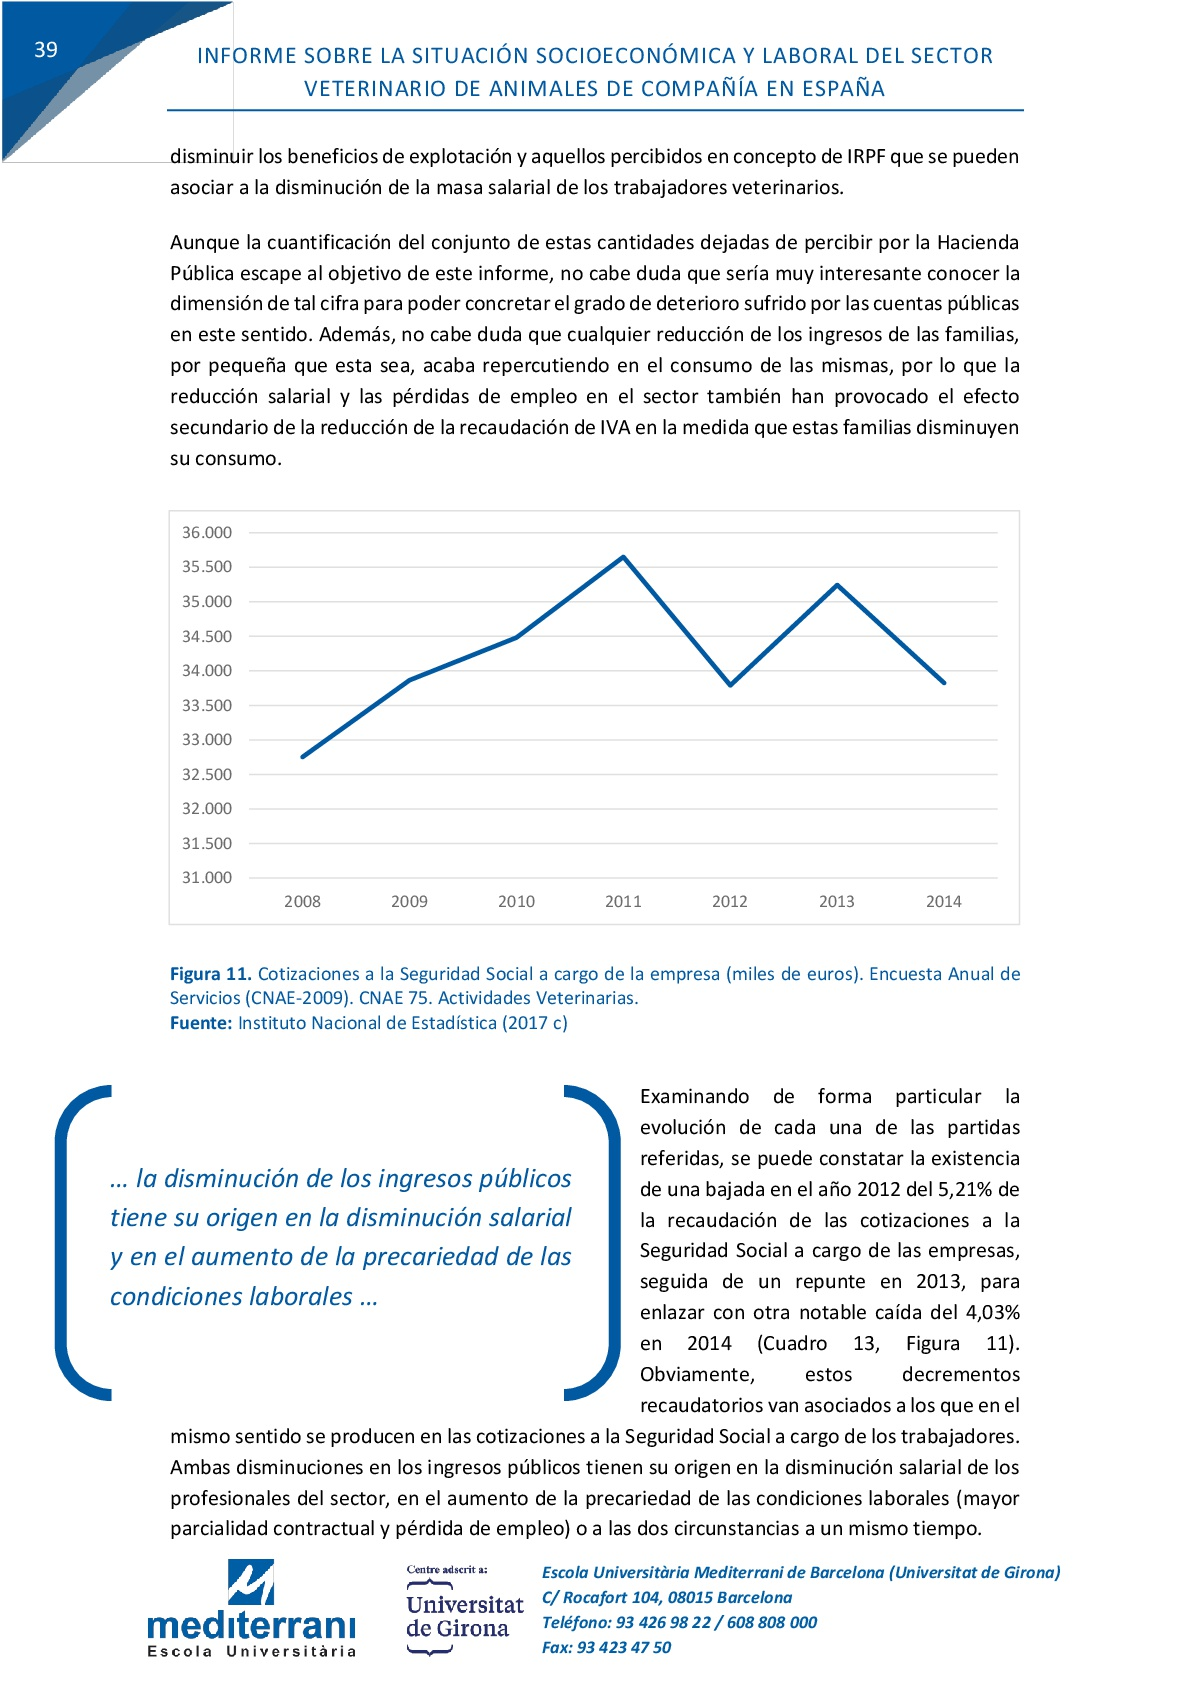 Informe-Veterinario-2017-+-informe-legal-2015-(3)-044